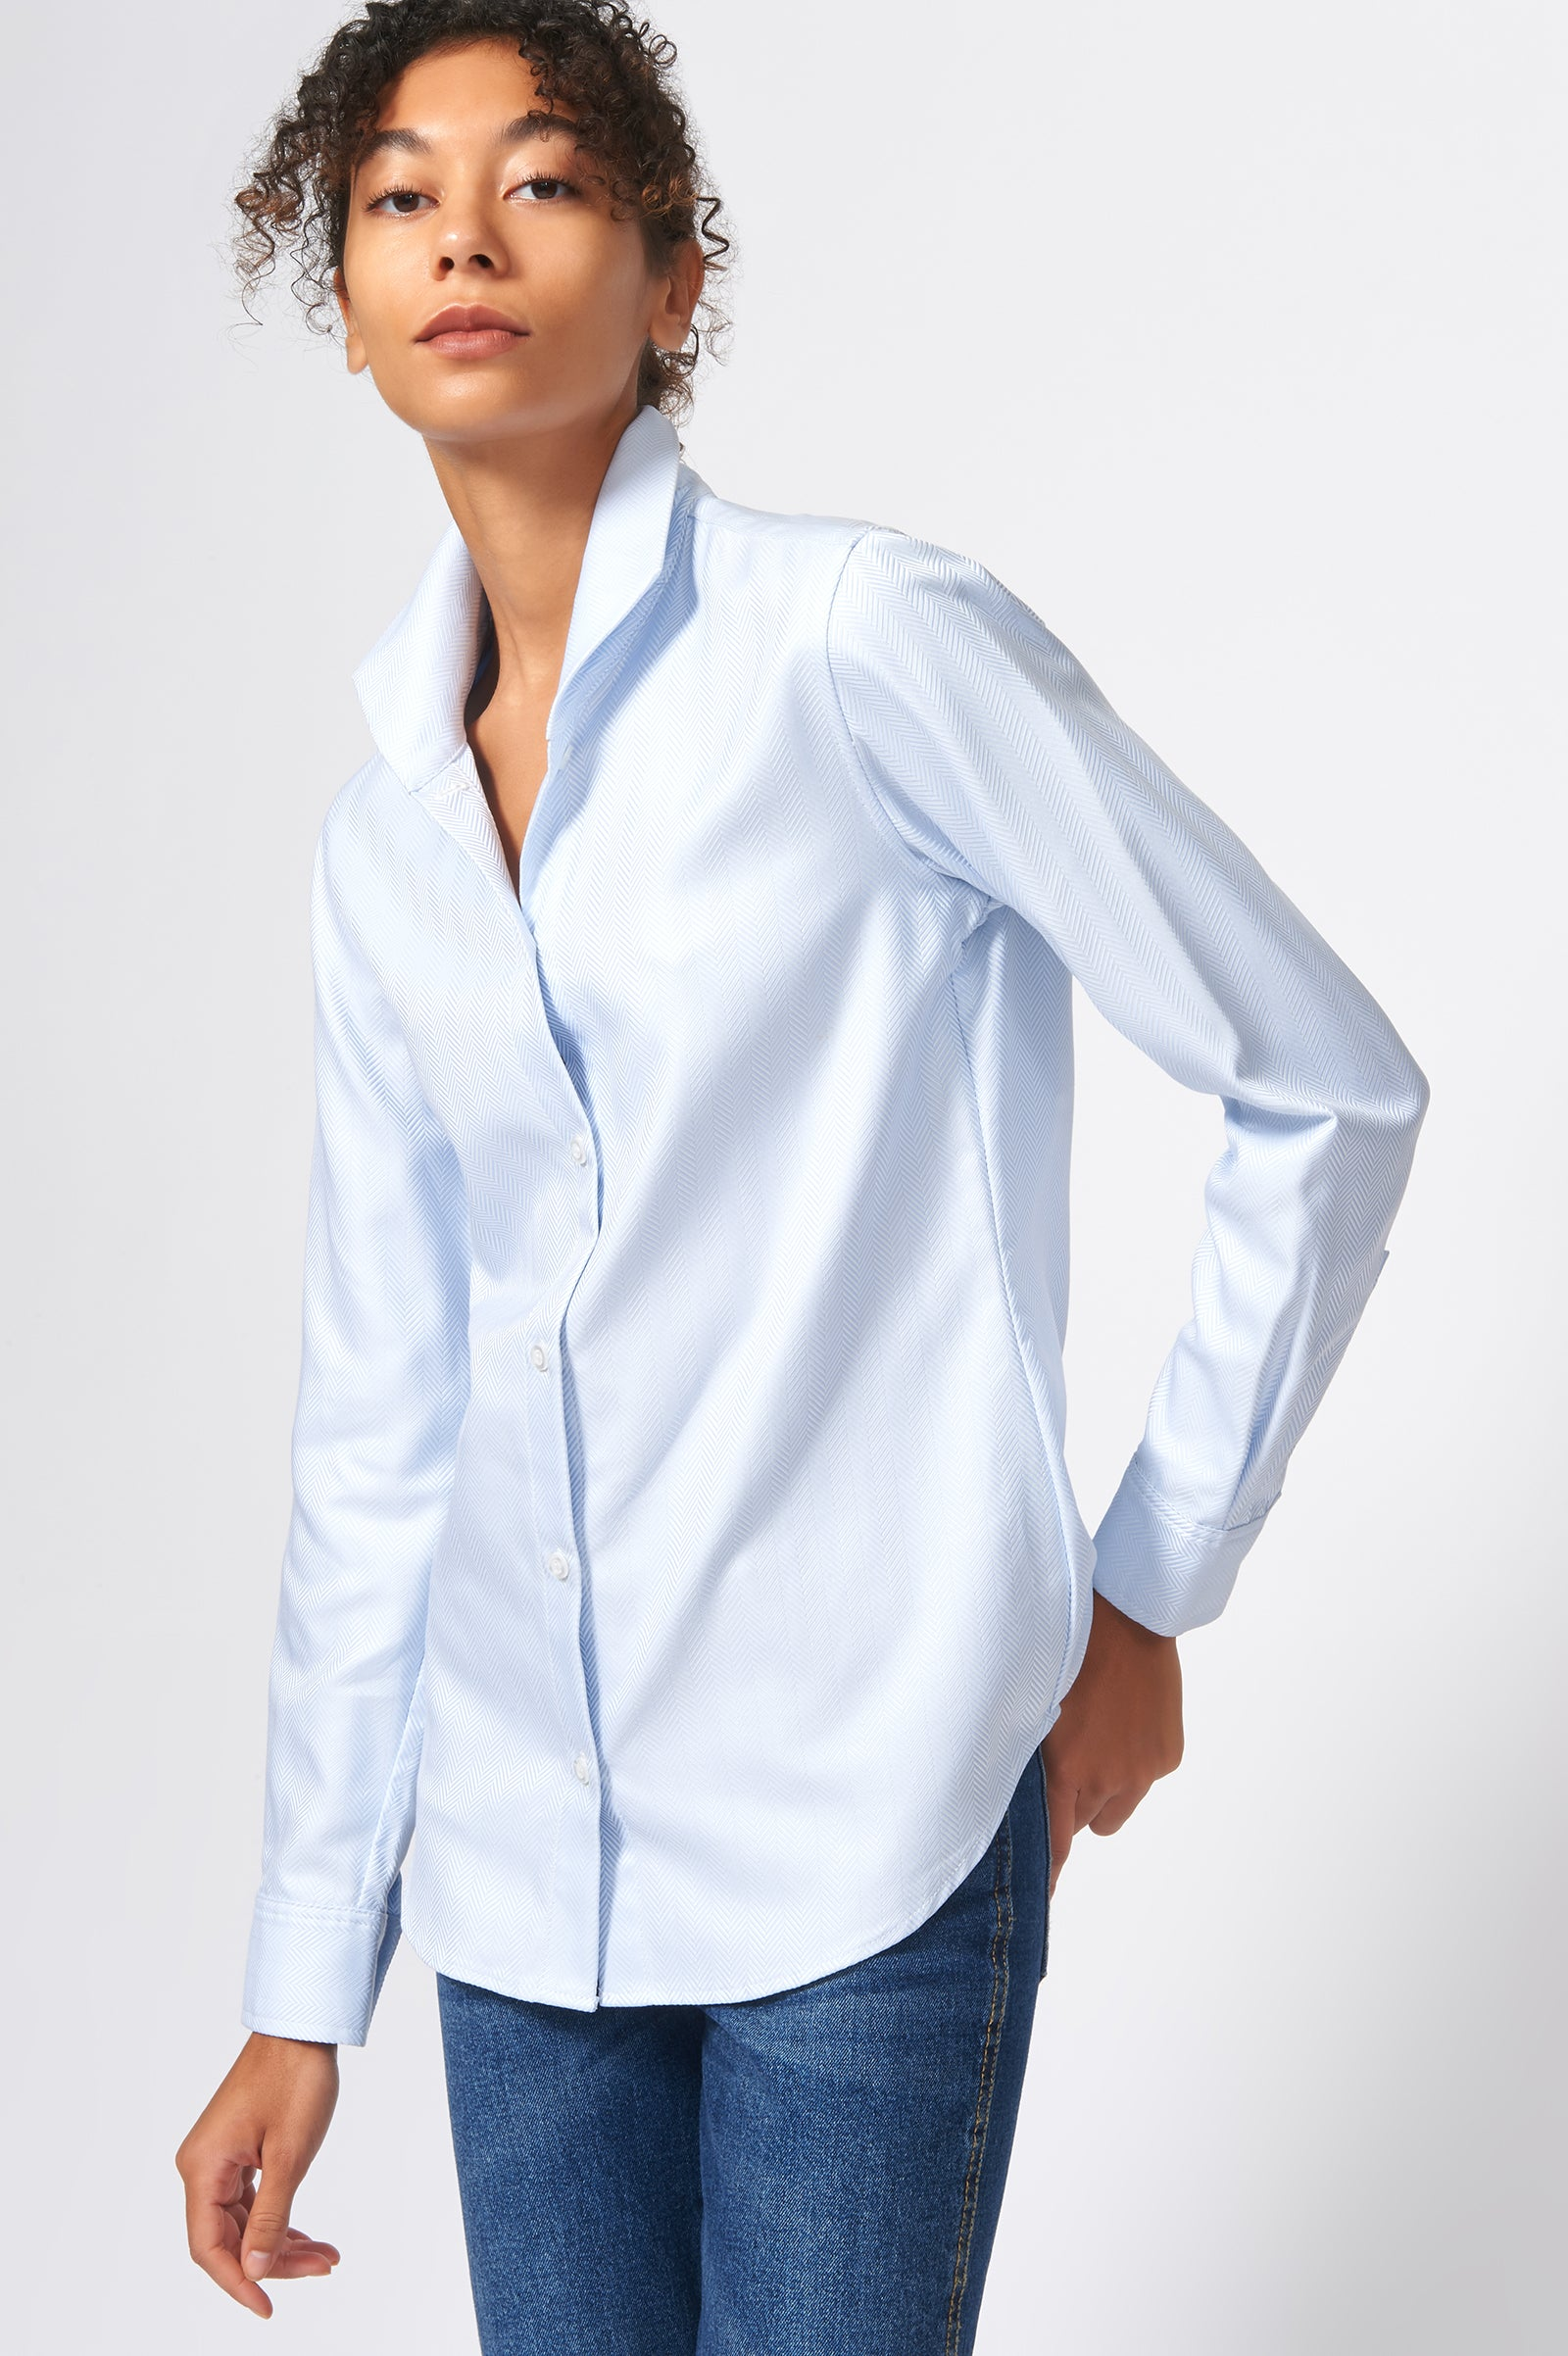 Kal Rieman Ginna Tailored Shirt in French Blue Herringbone on Model Front Side View